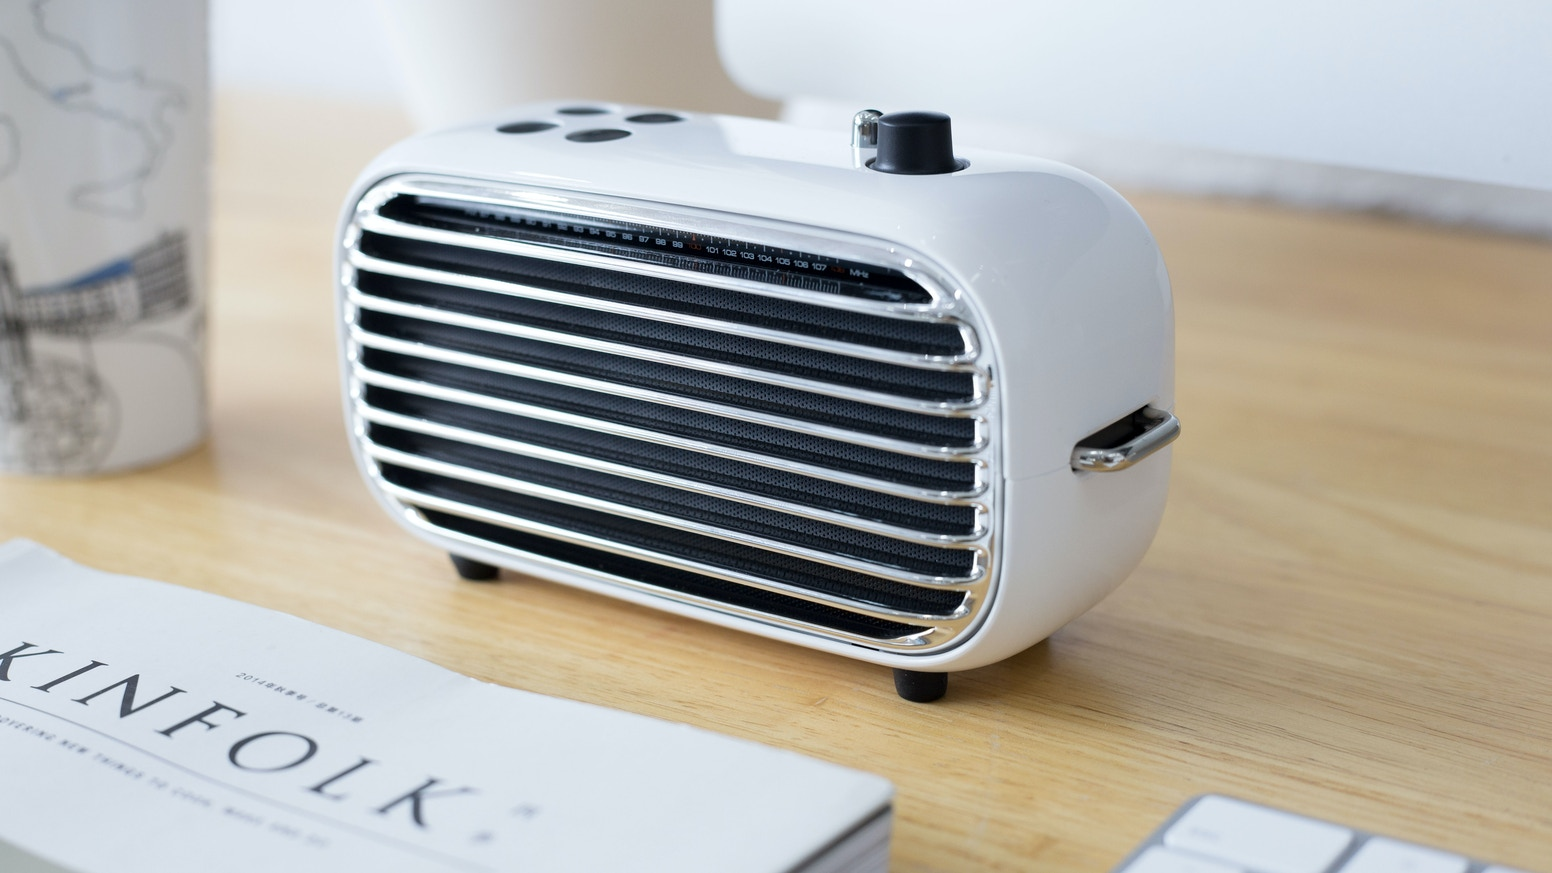 A portable vintage wireless radio speaker that brings back your old memories with powerful audio performance